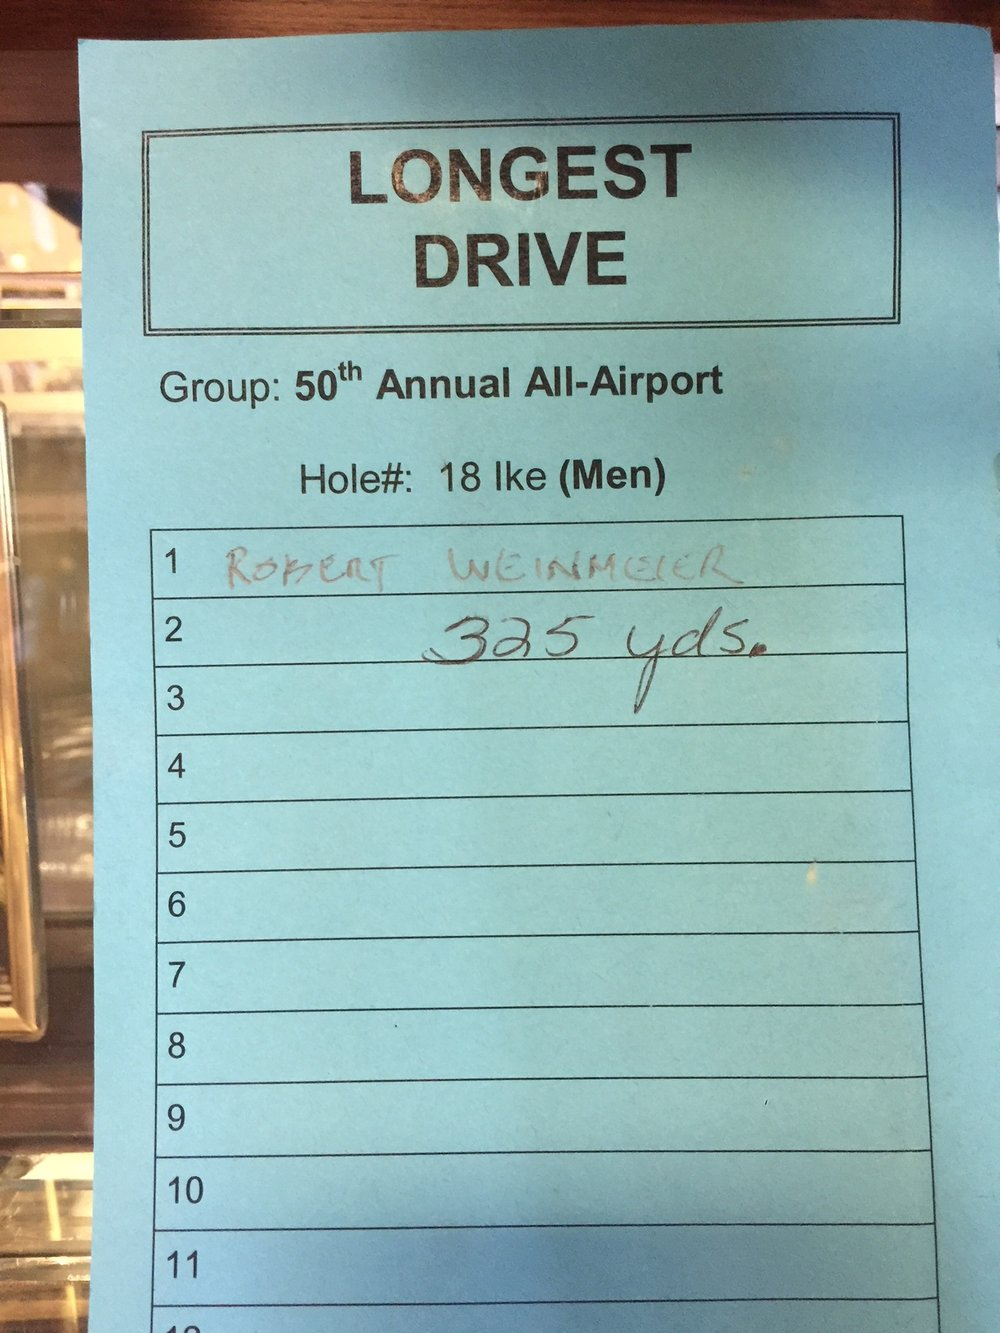 One of many long drive contests I've won